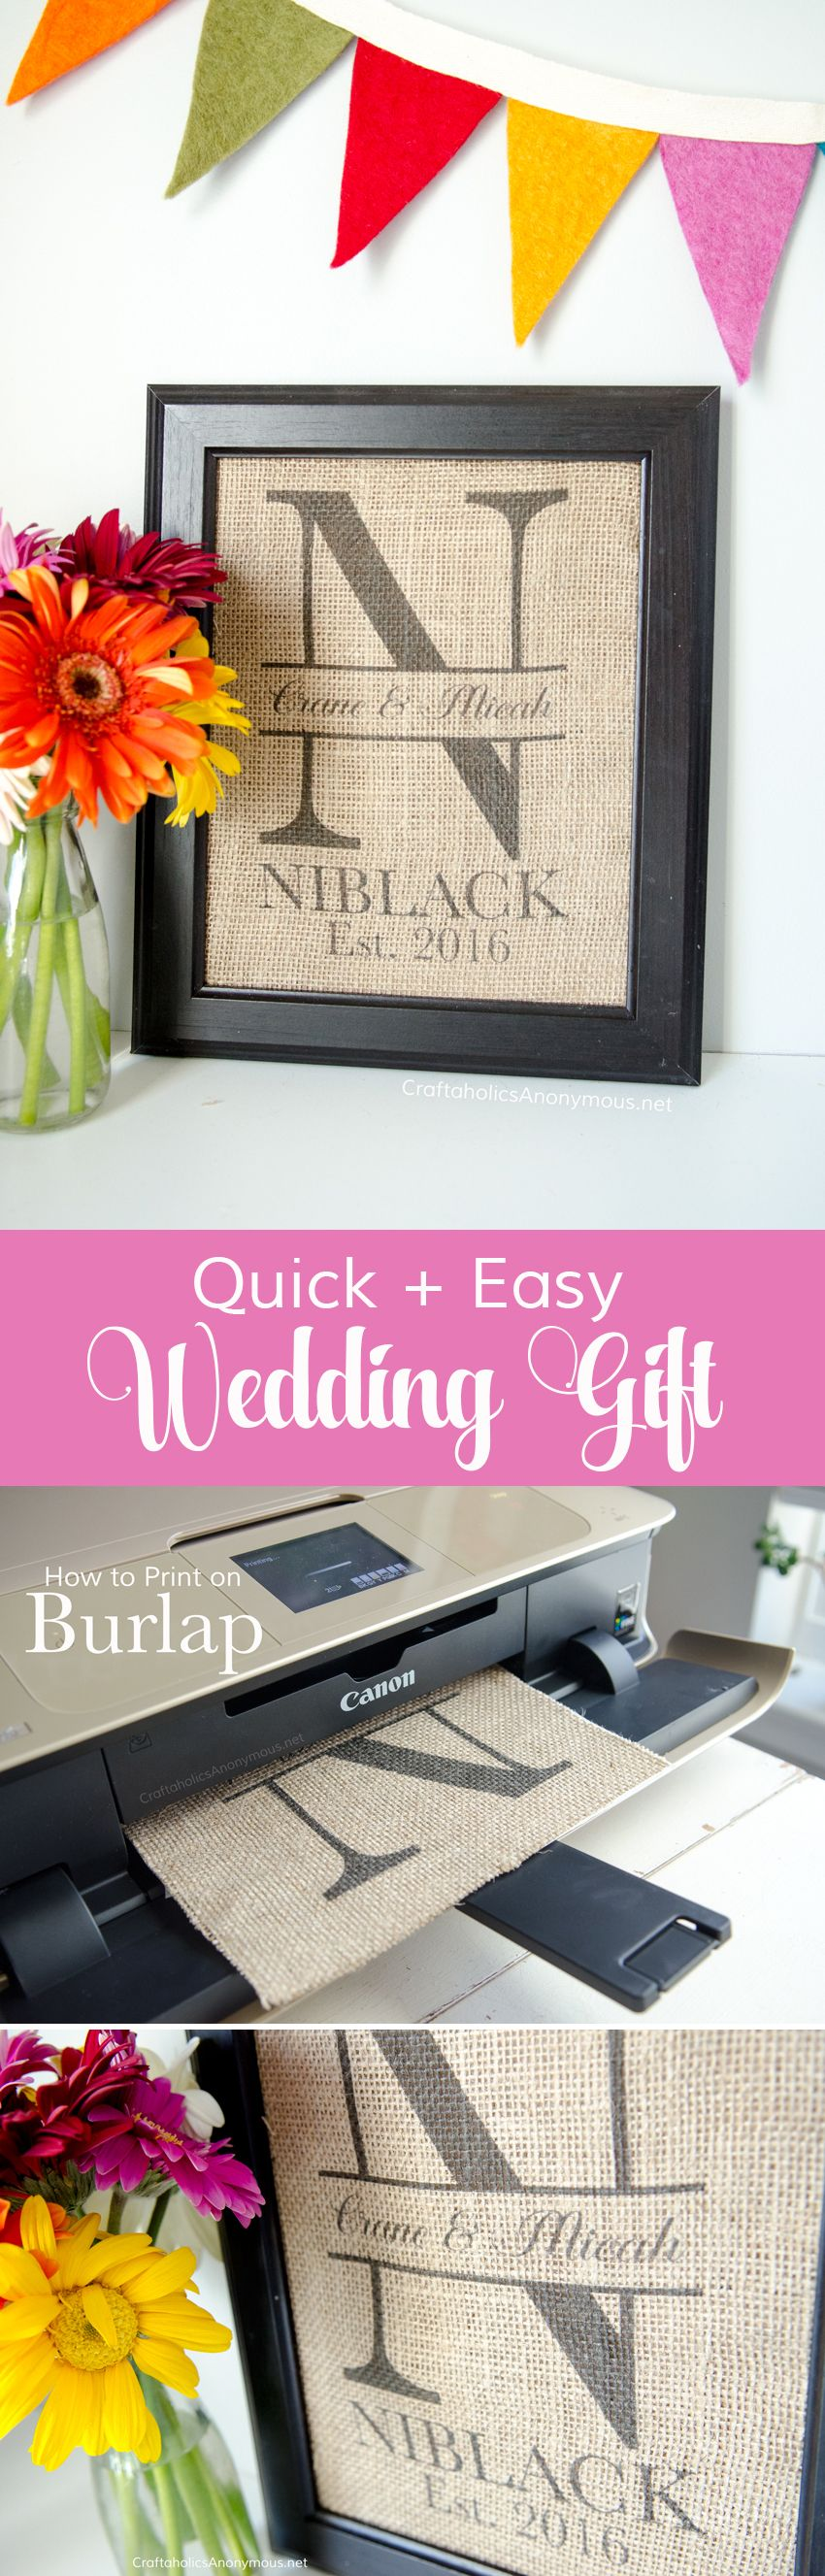 DIY Monogram Wedding Gift Idea | Craftaholics Anonymous® | Pinterest ...